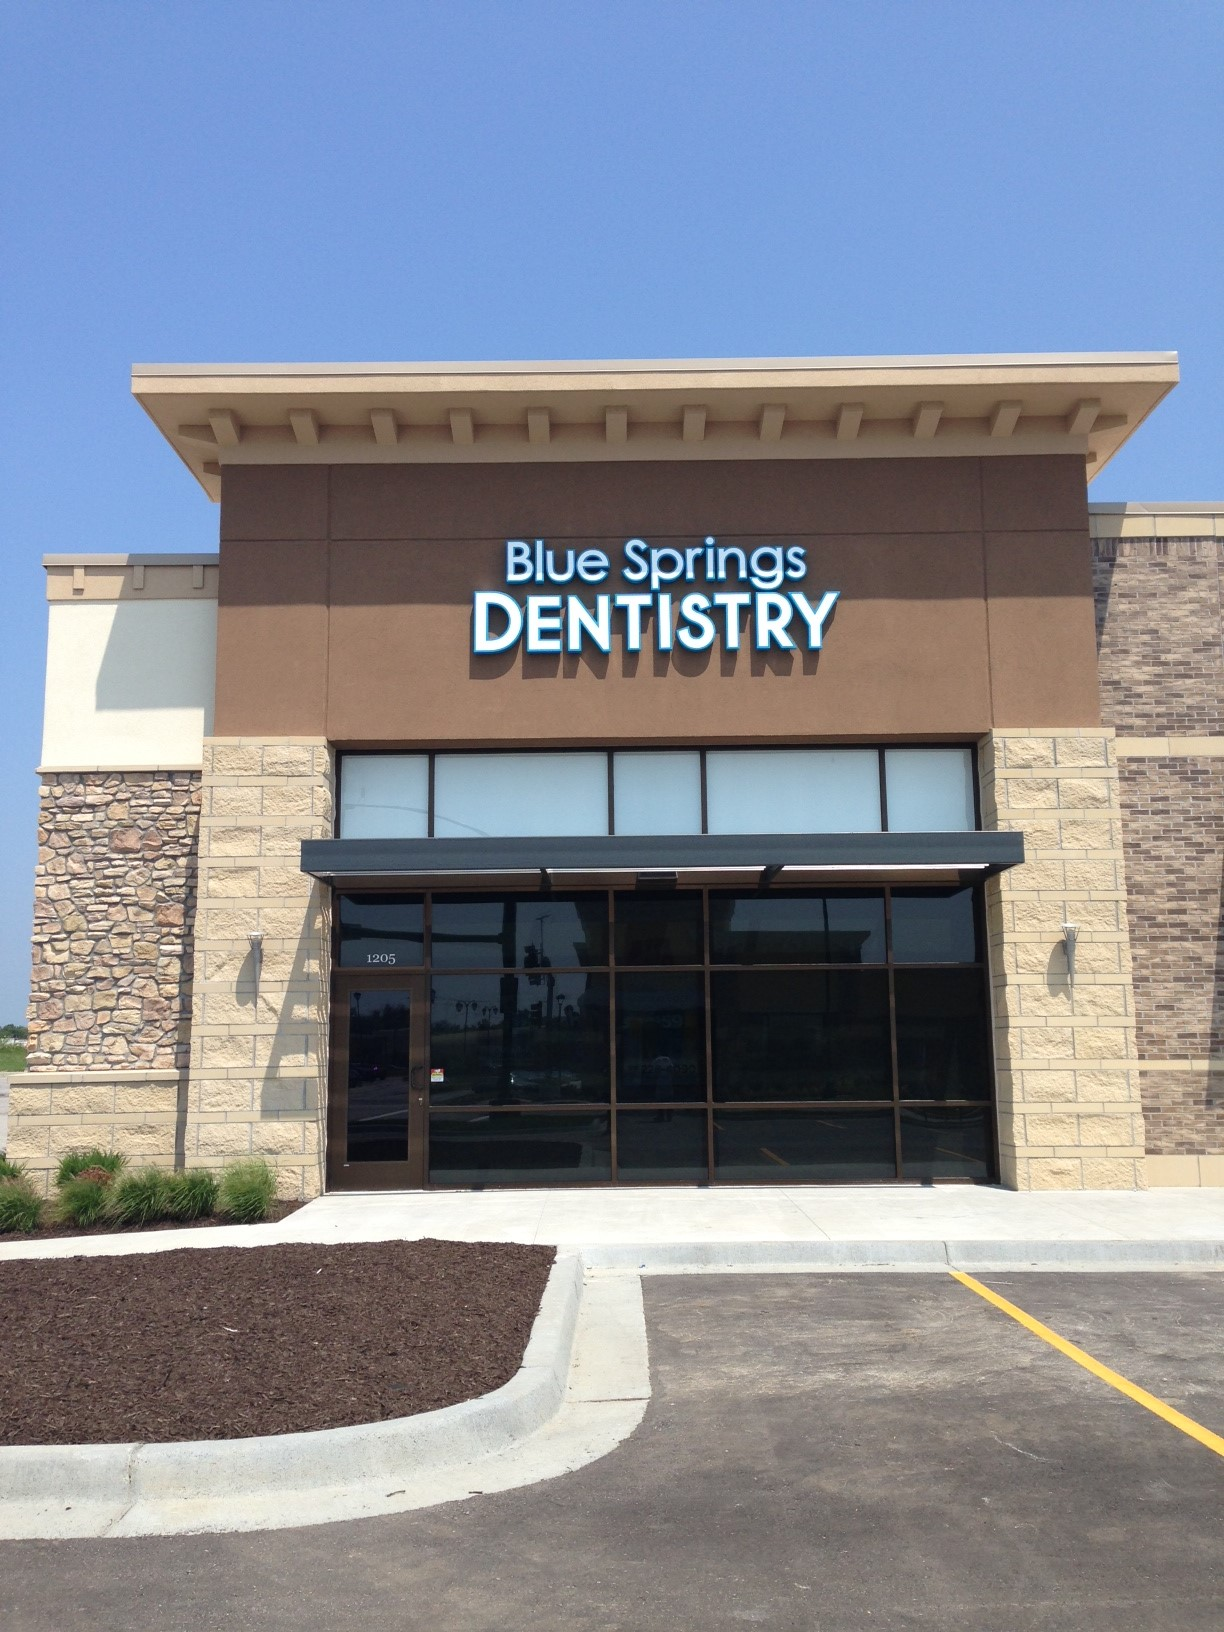 Blue Springs Dentistry 1205 Ne Coronado Dr Blue Springs